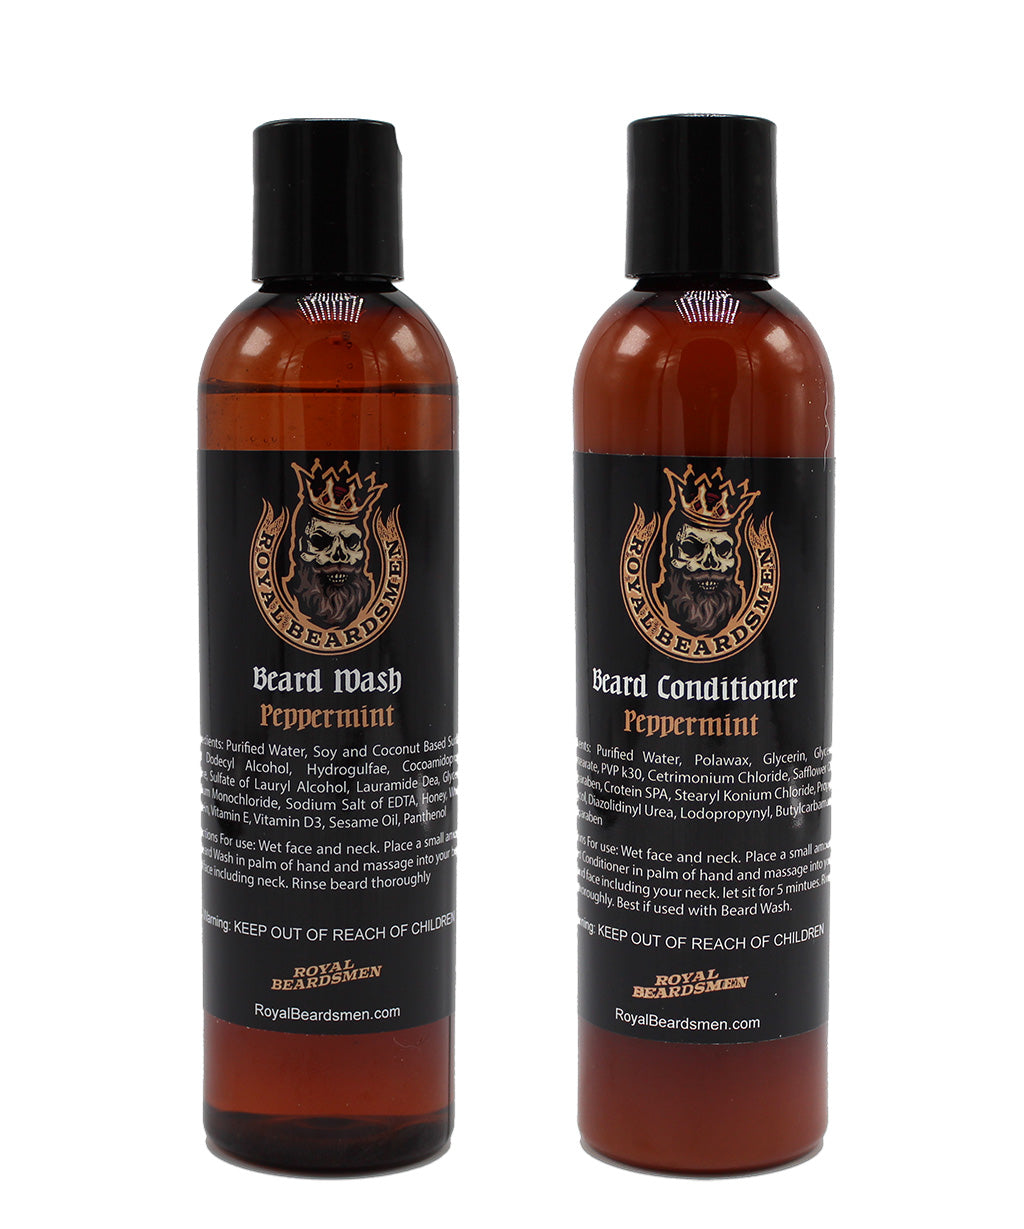 Peppermint Beard Wash and Peppermint Beard Conditioner Combo